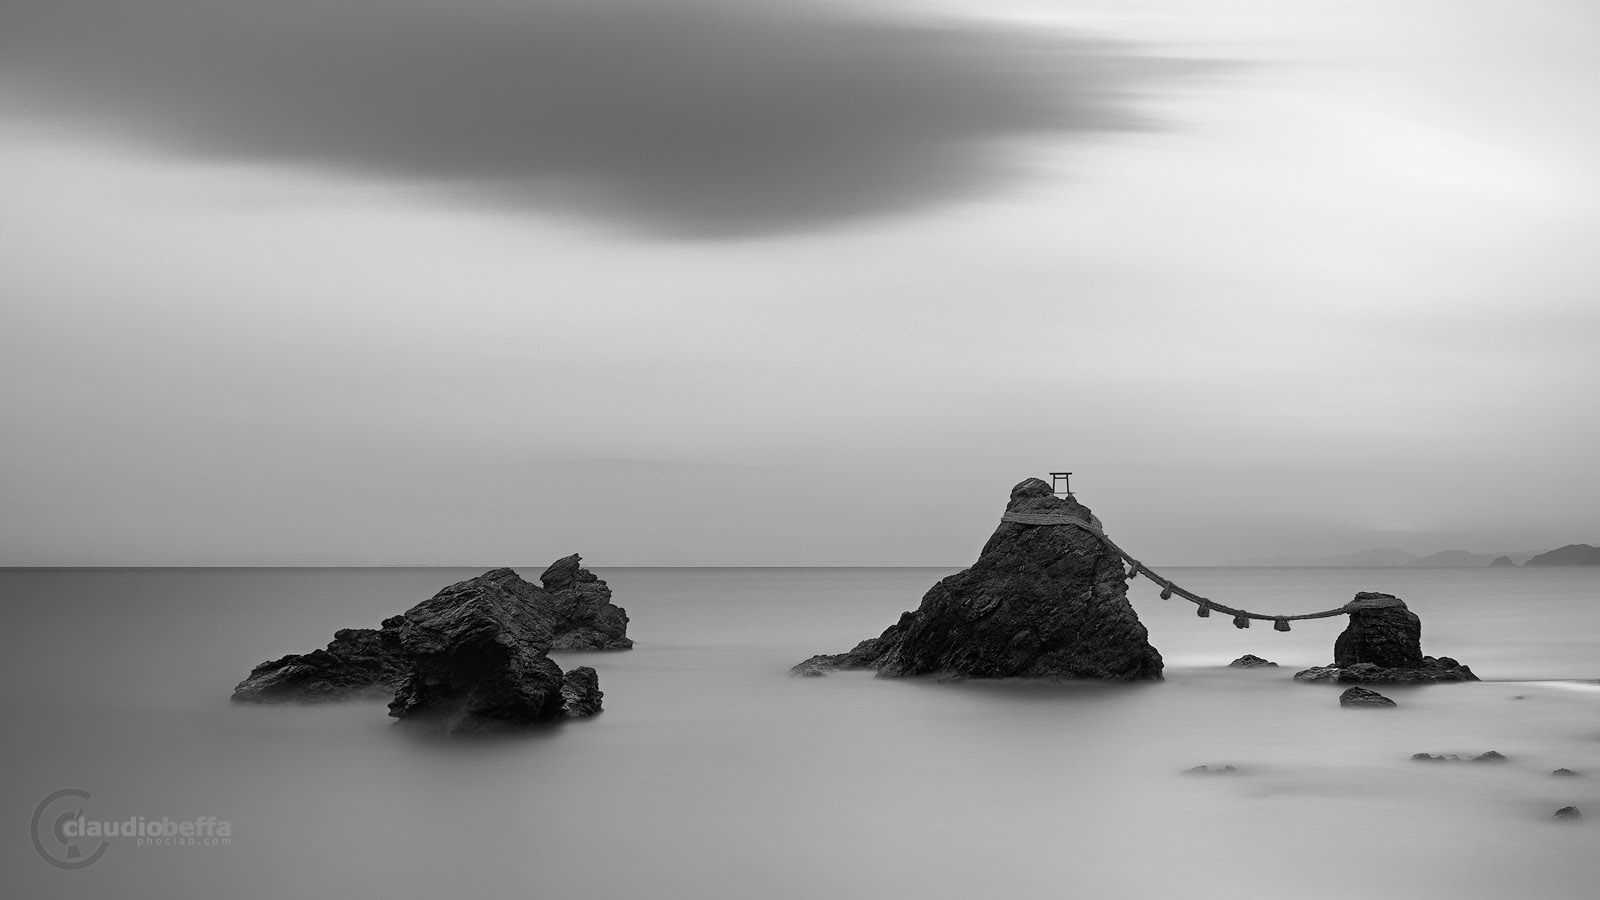 Meoto Iwa, Rocks, Japan, Landscape